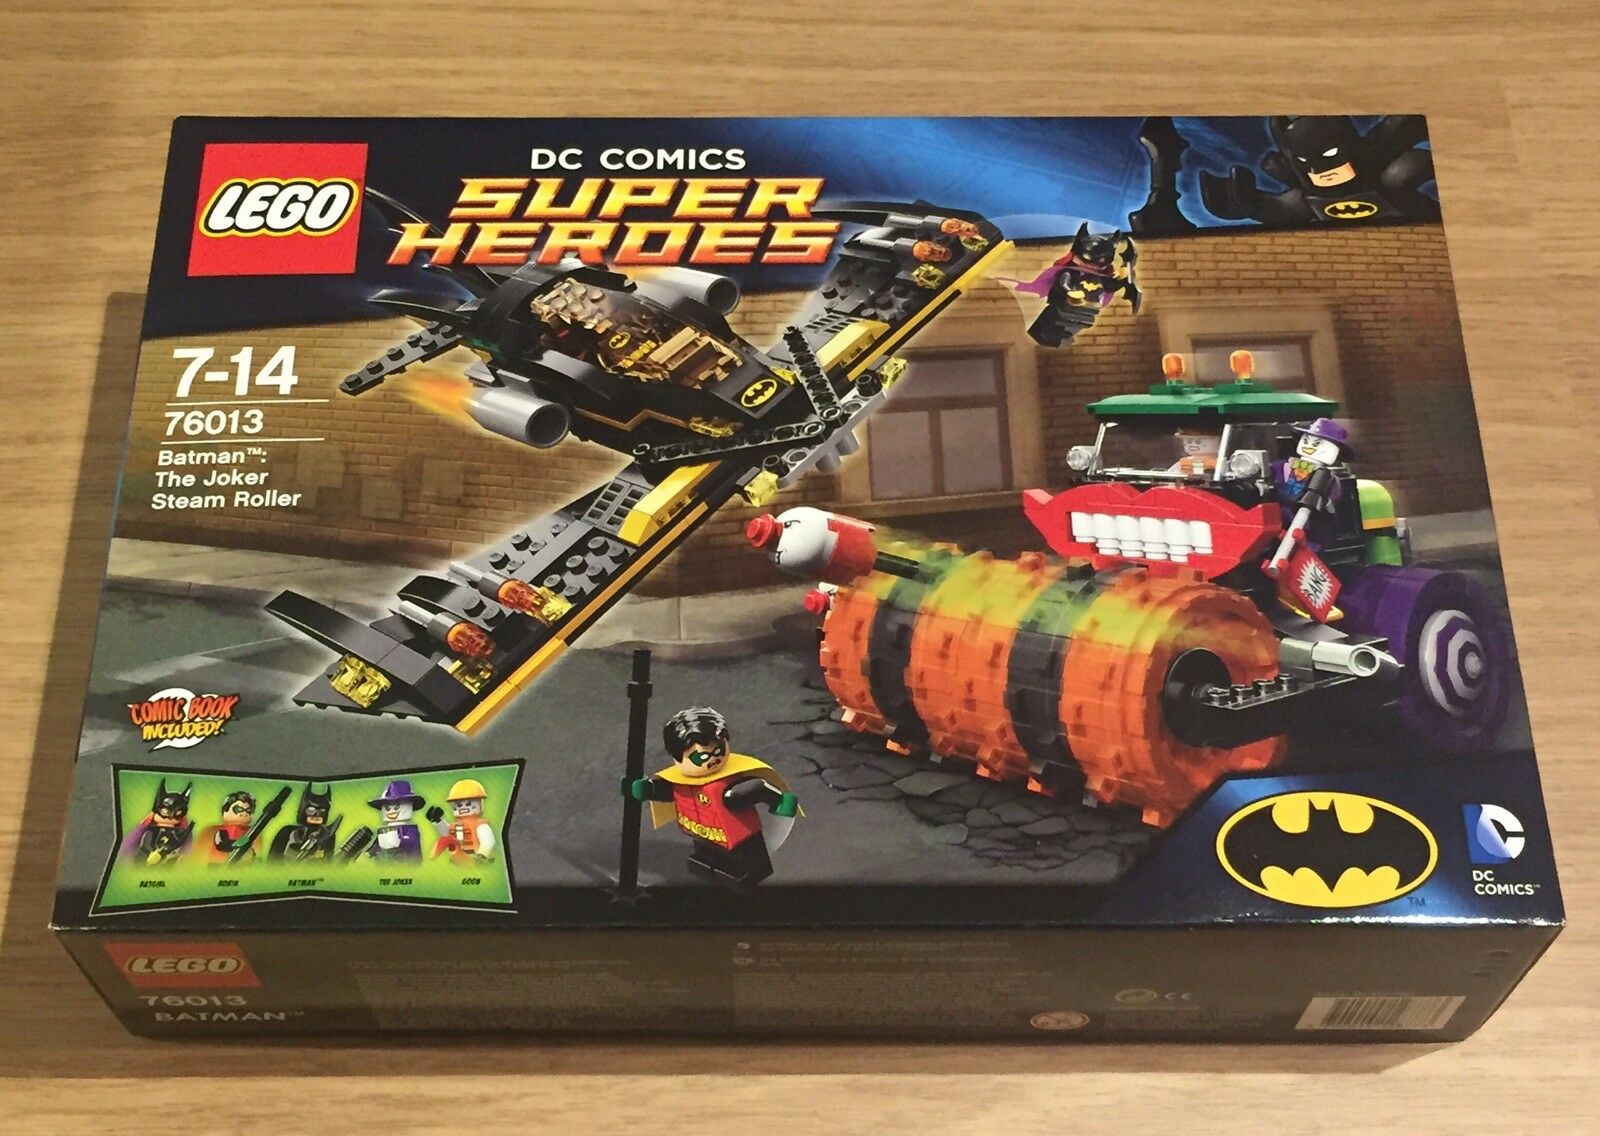 LEGO DC Comics Super Heroes Batman The Joker Steam Roller set. 76013. Brand New